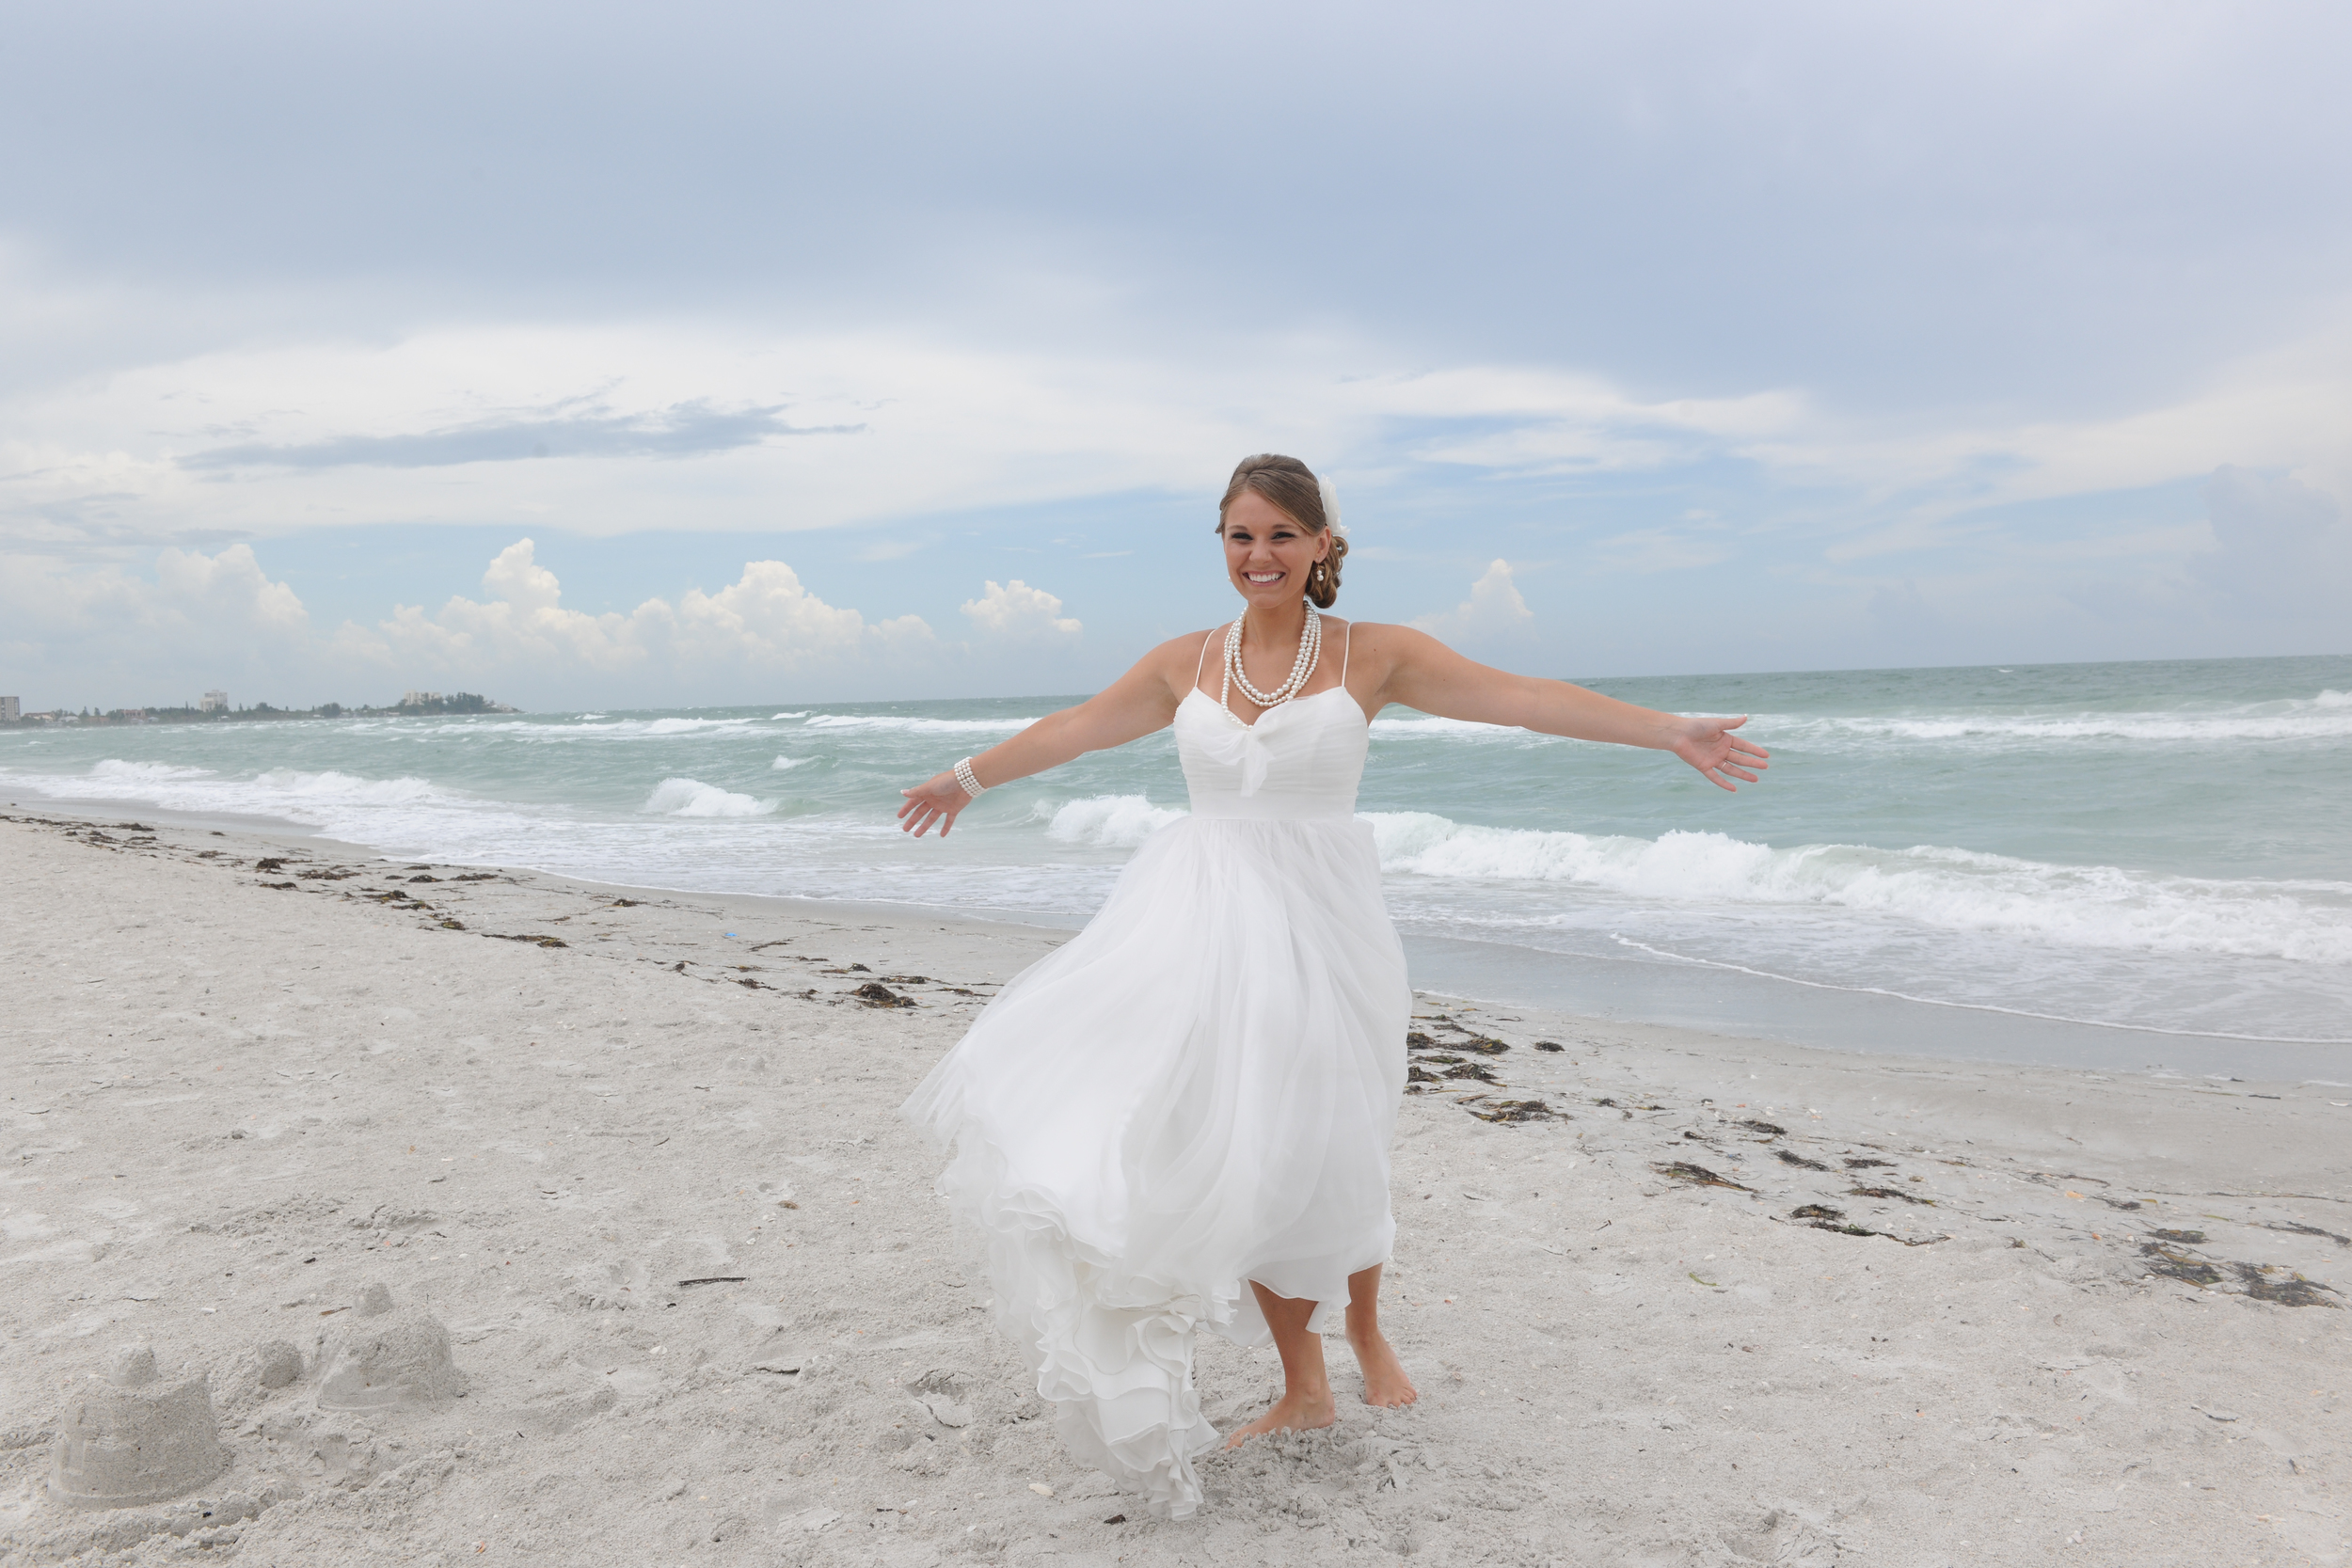 Bride_on_the_Beach_49334_standard.jpg